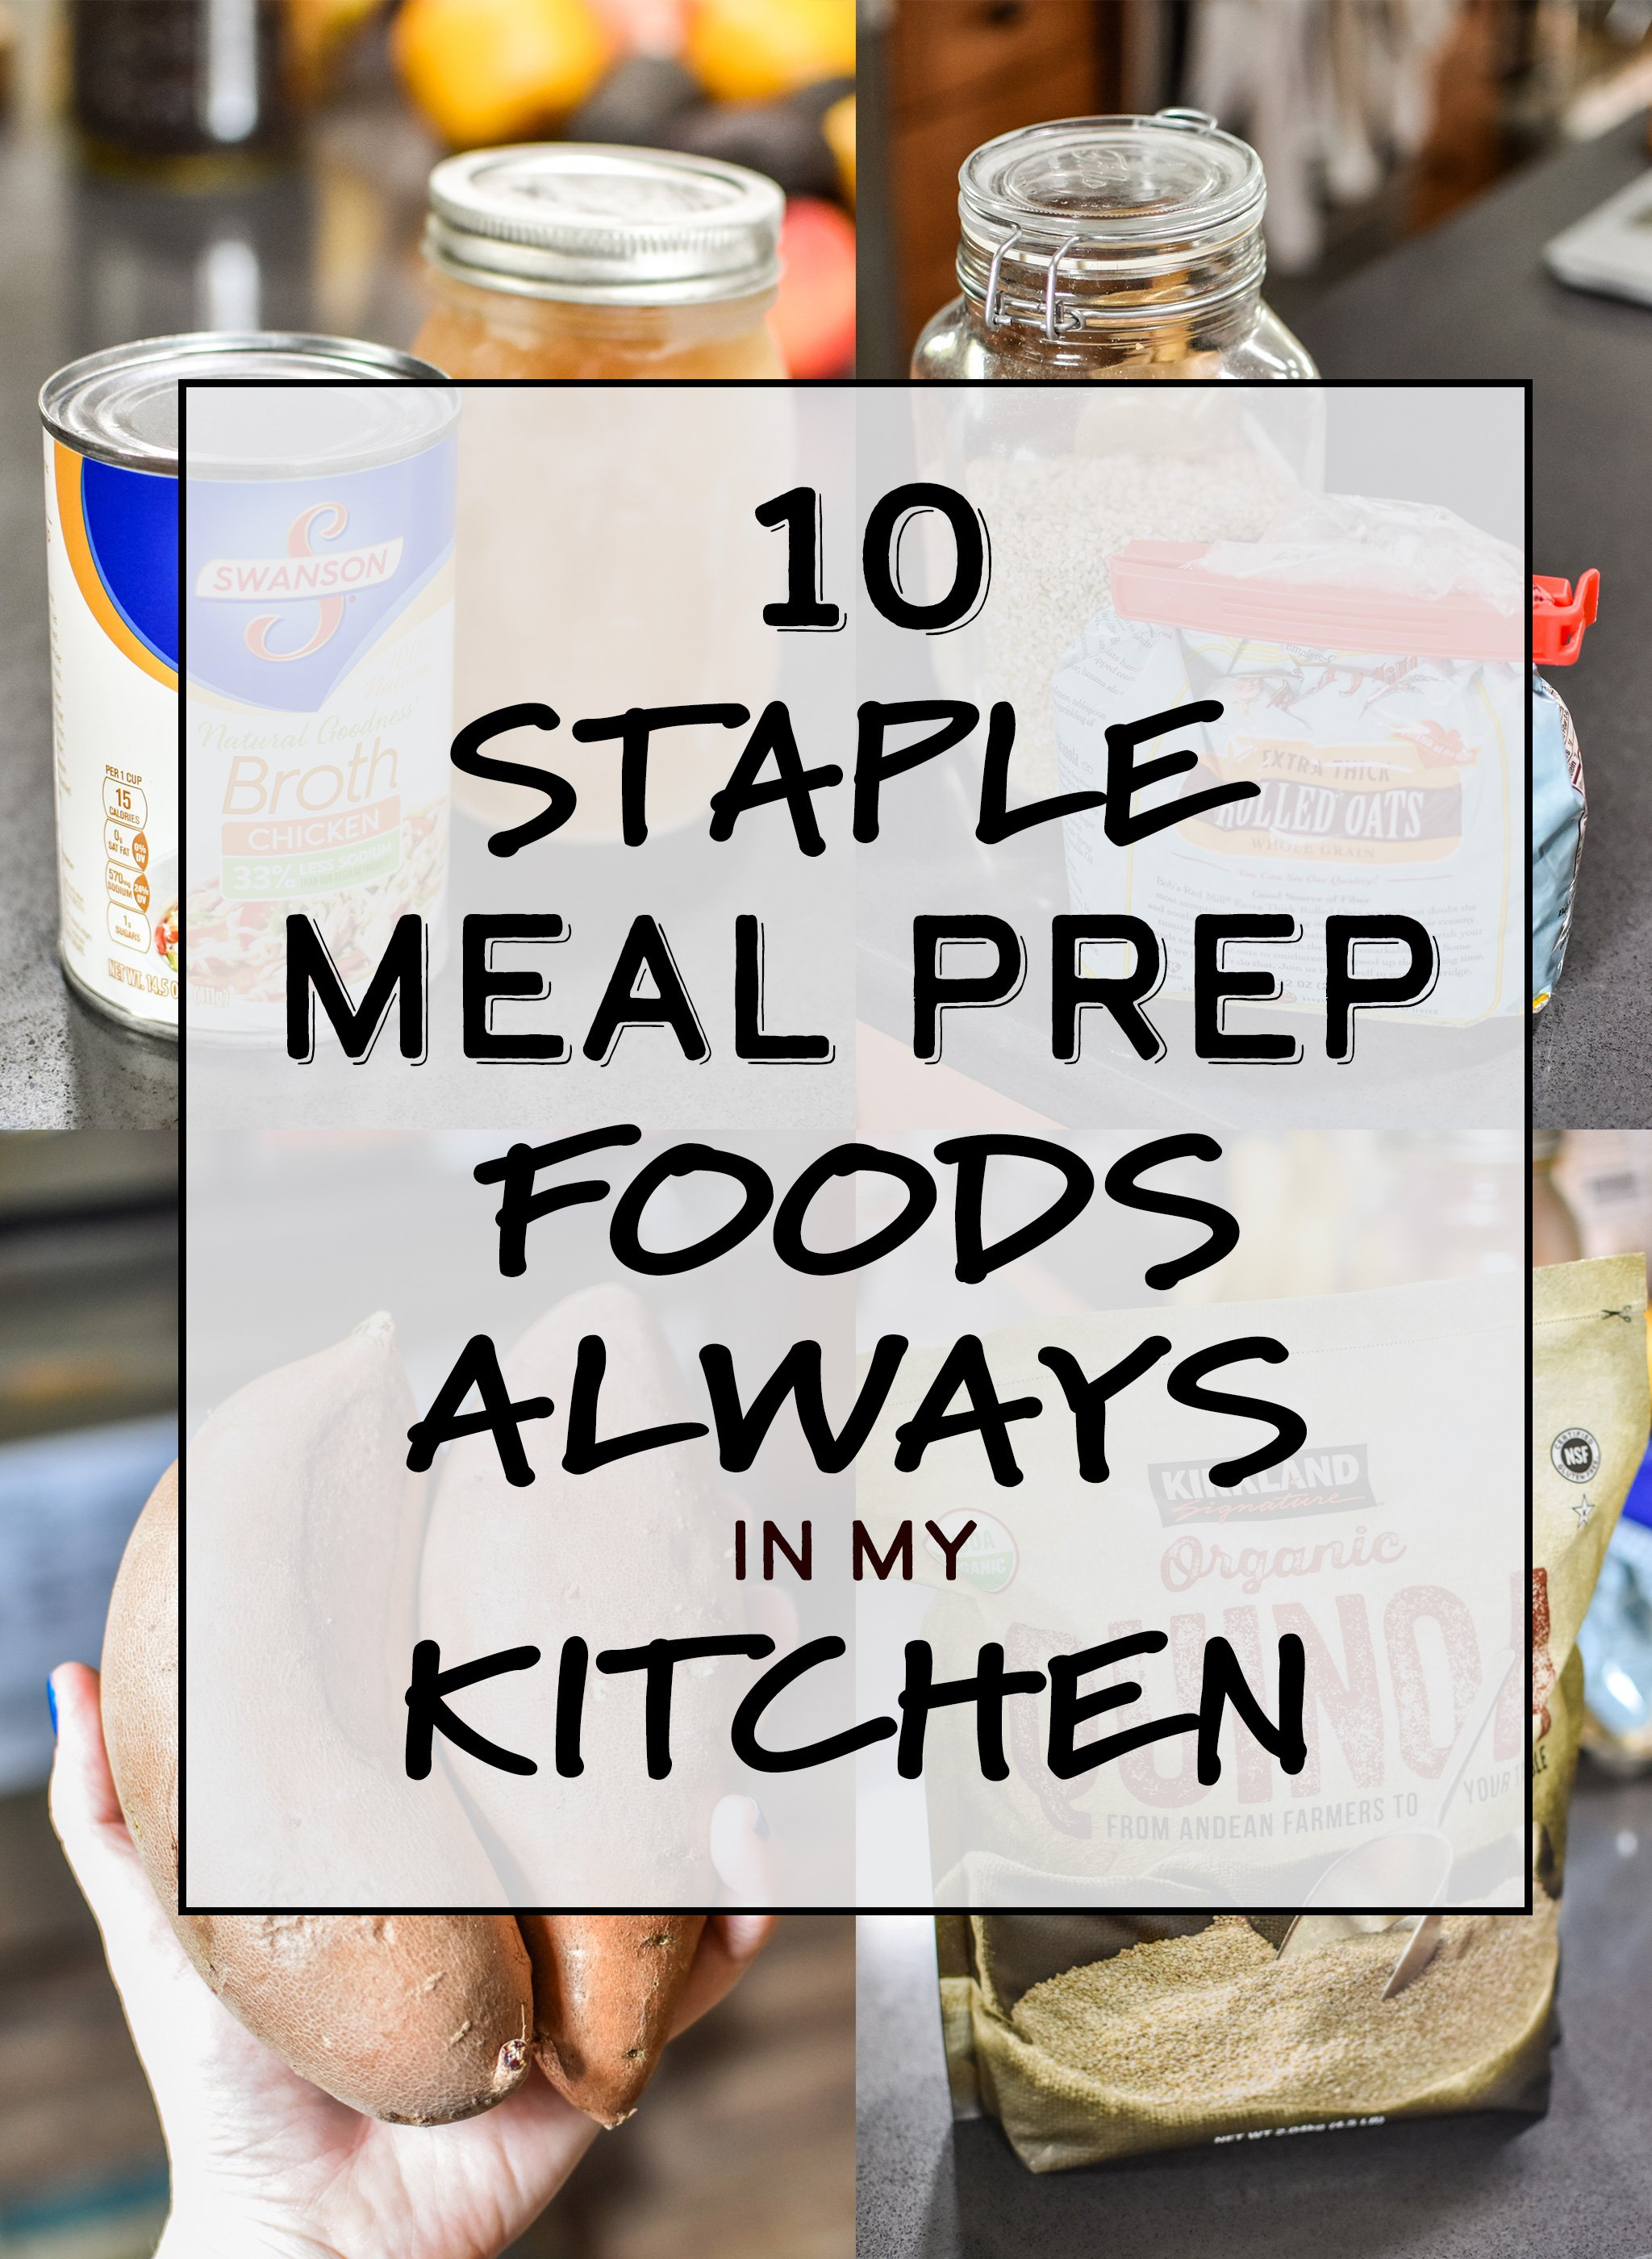 cover photo for article 10 staple meal prep foods always in my kitchen